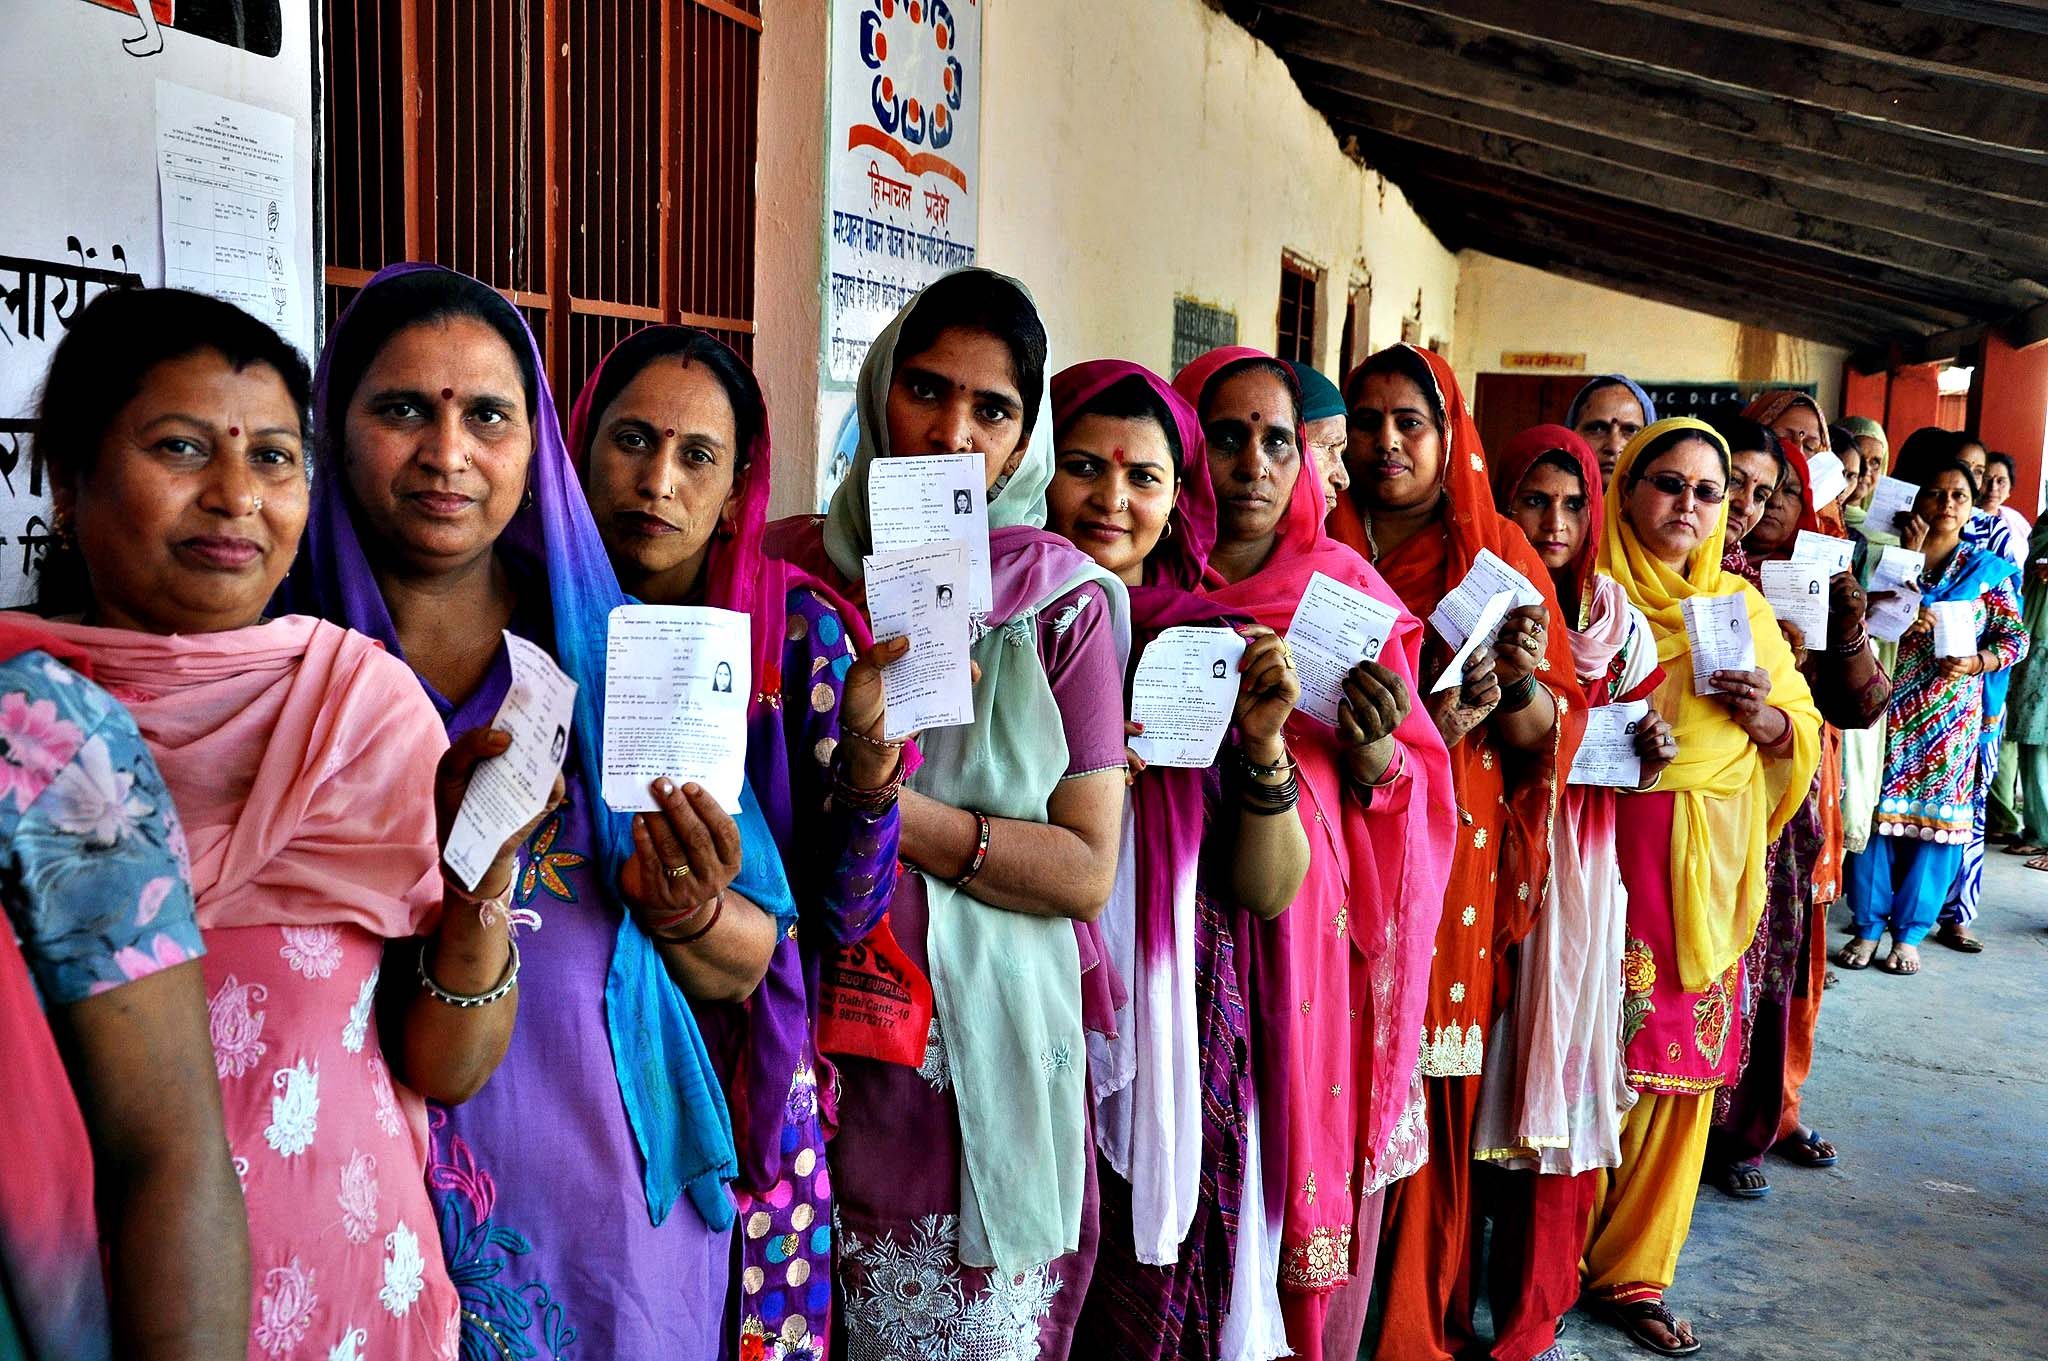 Voting during 8th phase of Parliamentary election...epa04194527 Indian women show their voting slips as they wait to cast their votes at a polling station during the 8th phase of Parliamentary election at Palampur, Himachal Pradesh, India, 07 May 2014. Parliamentary elections in India are being held in nine phases between 07 April and 12 May 2014. A total of 814.6 million people are eligible to vote, around 100 million more than in the elections in 2009. EPA/SANJAY BAID